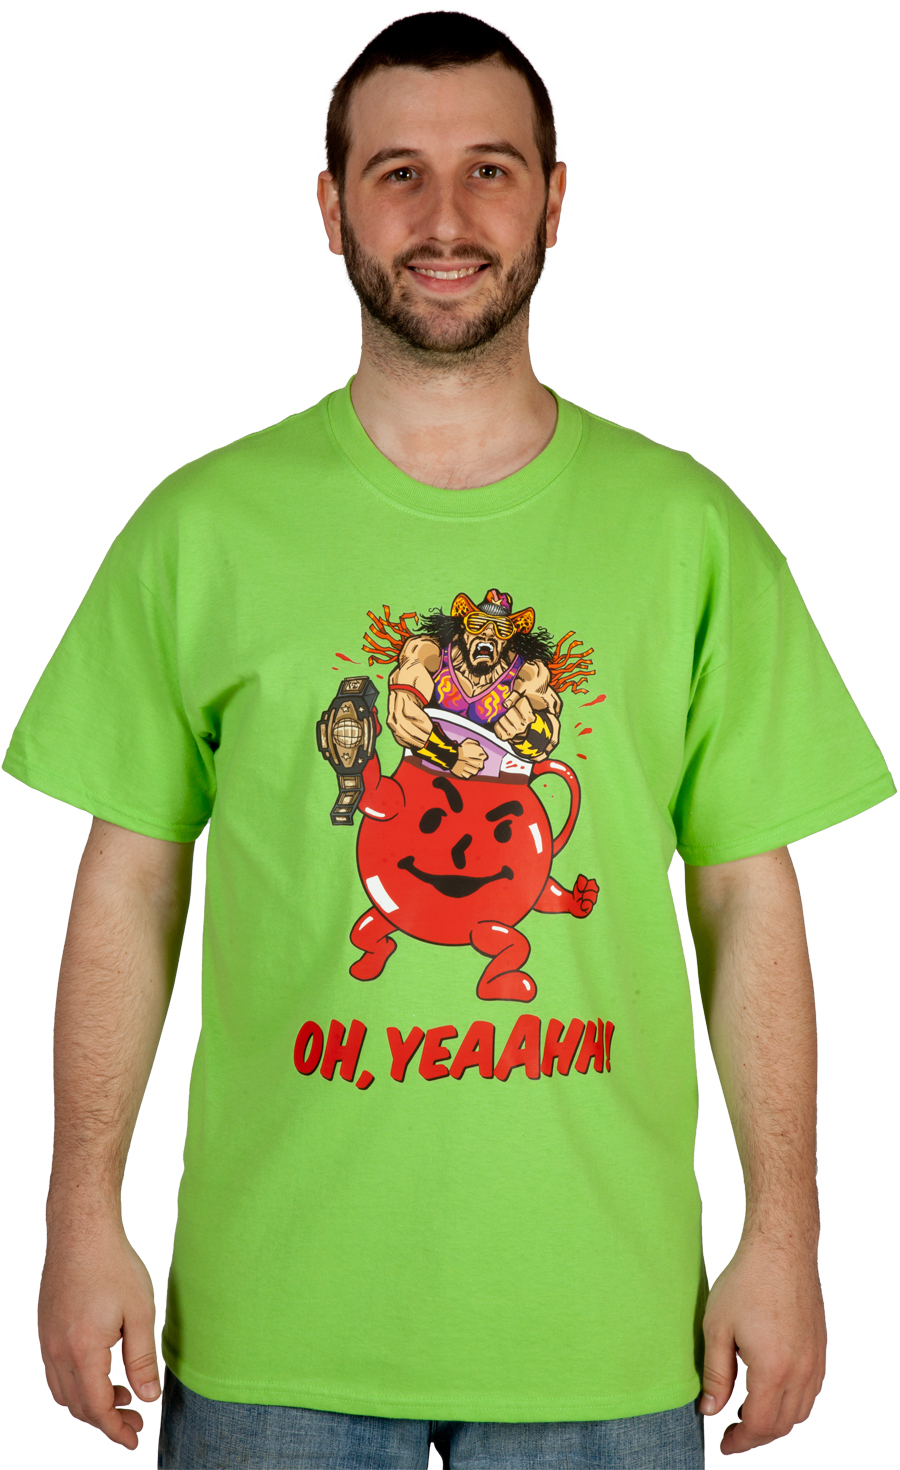 Randy Savage Kool-Aid Oh Yeah shirt